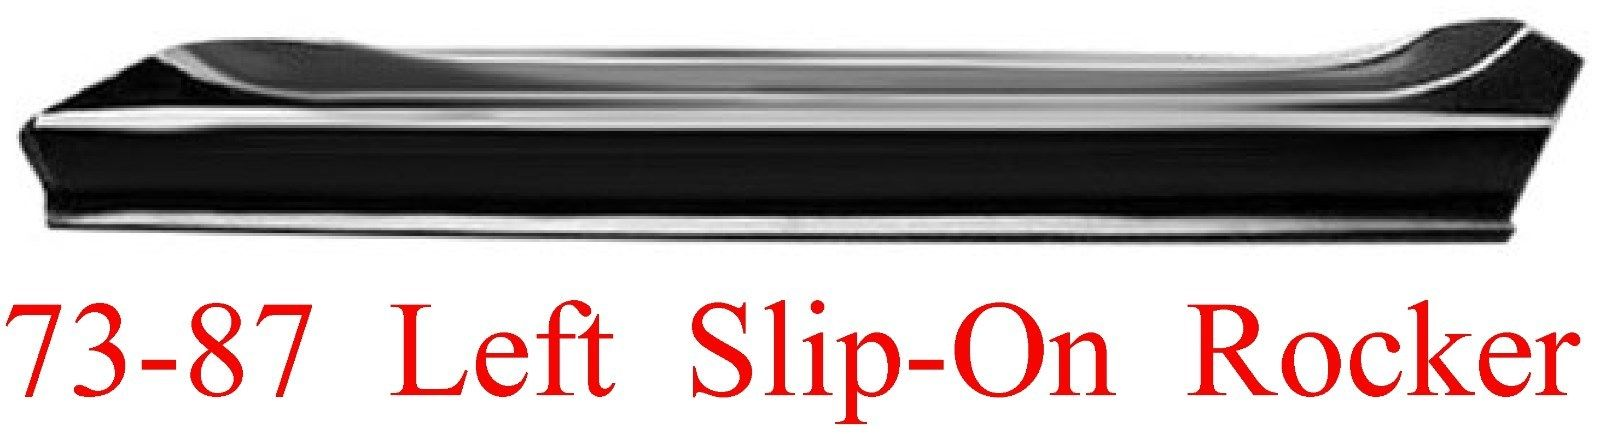 73-87-91 Chevy & GMC Left Slip-On Rocker Panel